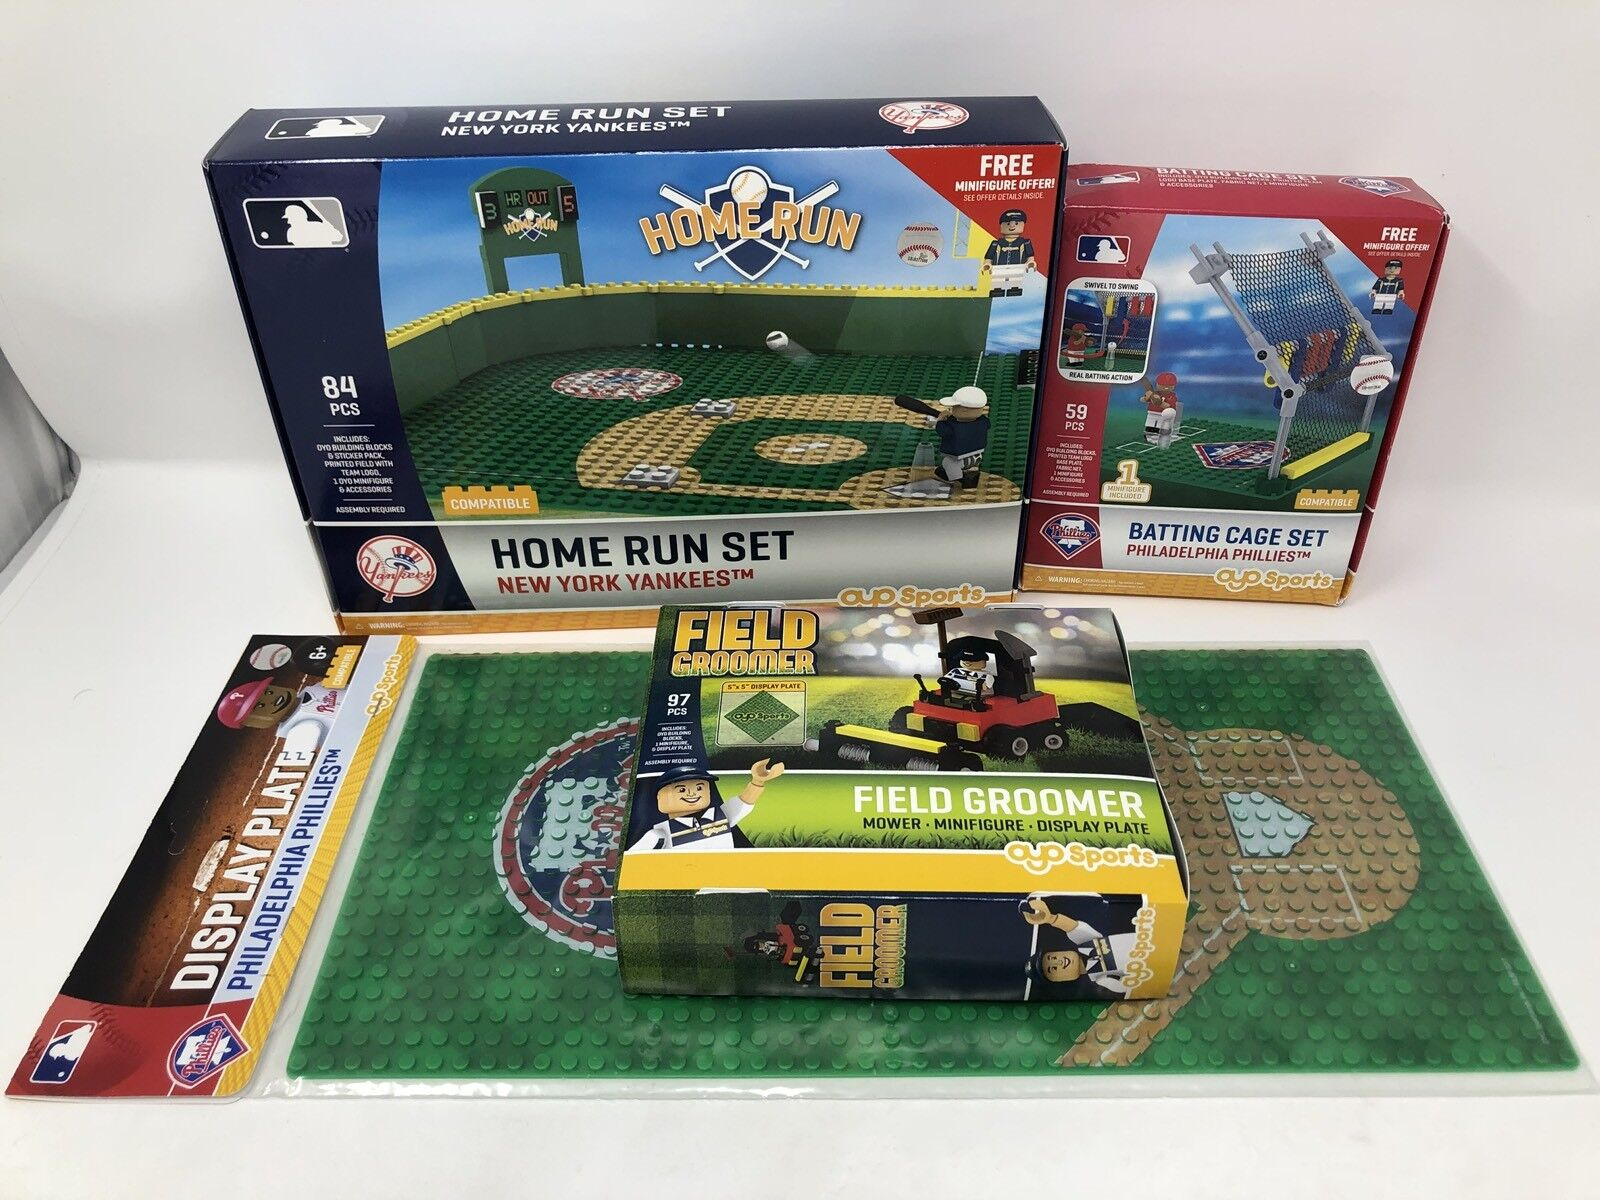 NEW YORK YANKEES HOME RUN Vs Phillies Batting Cage MINIFIG Display Plate Field